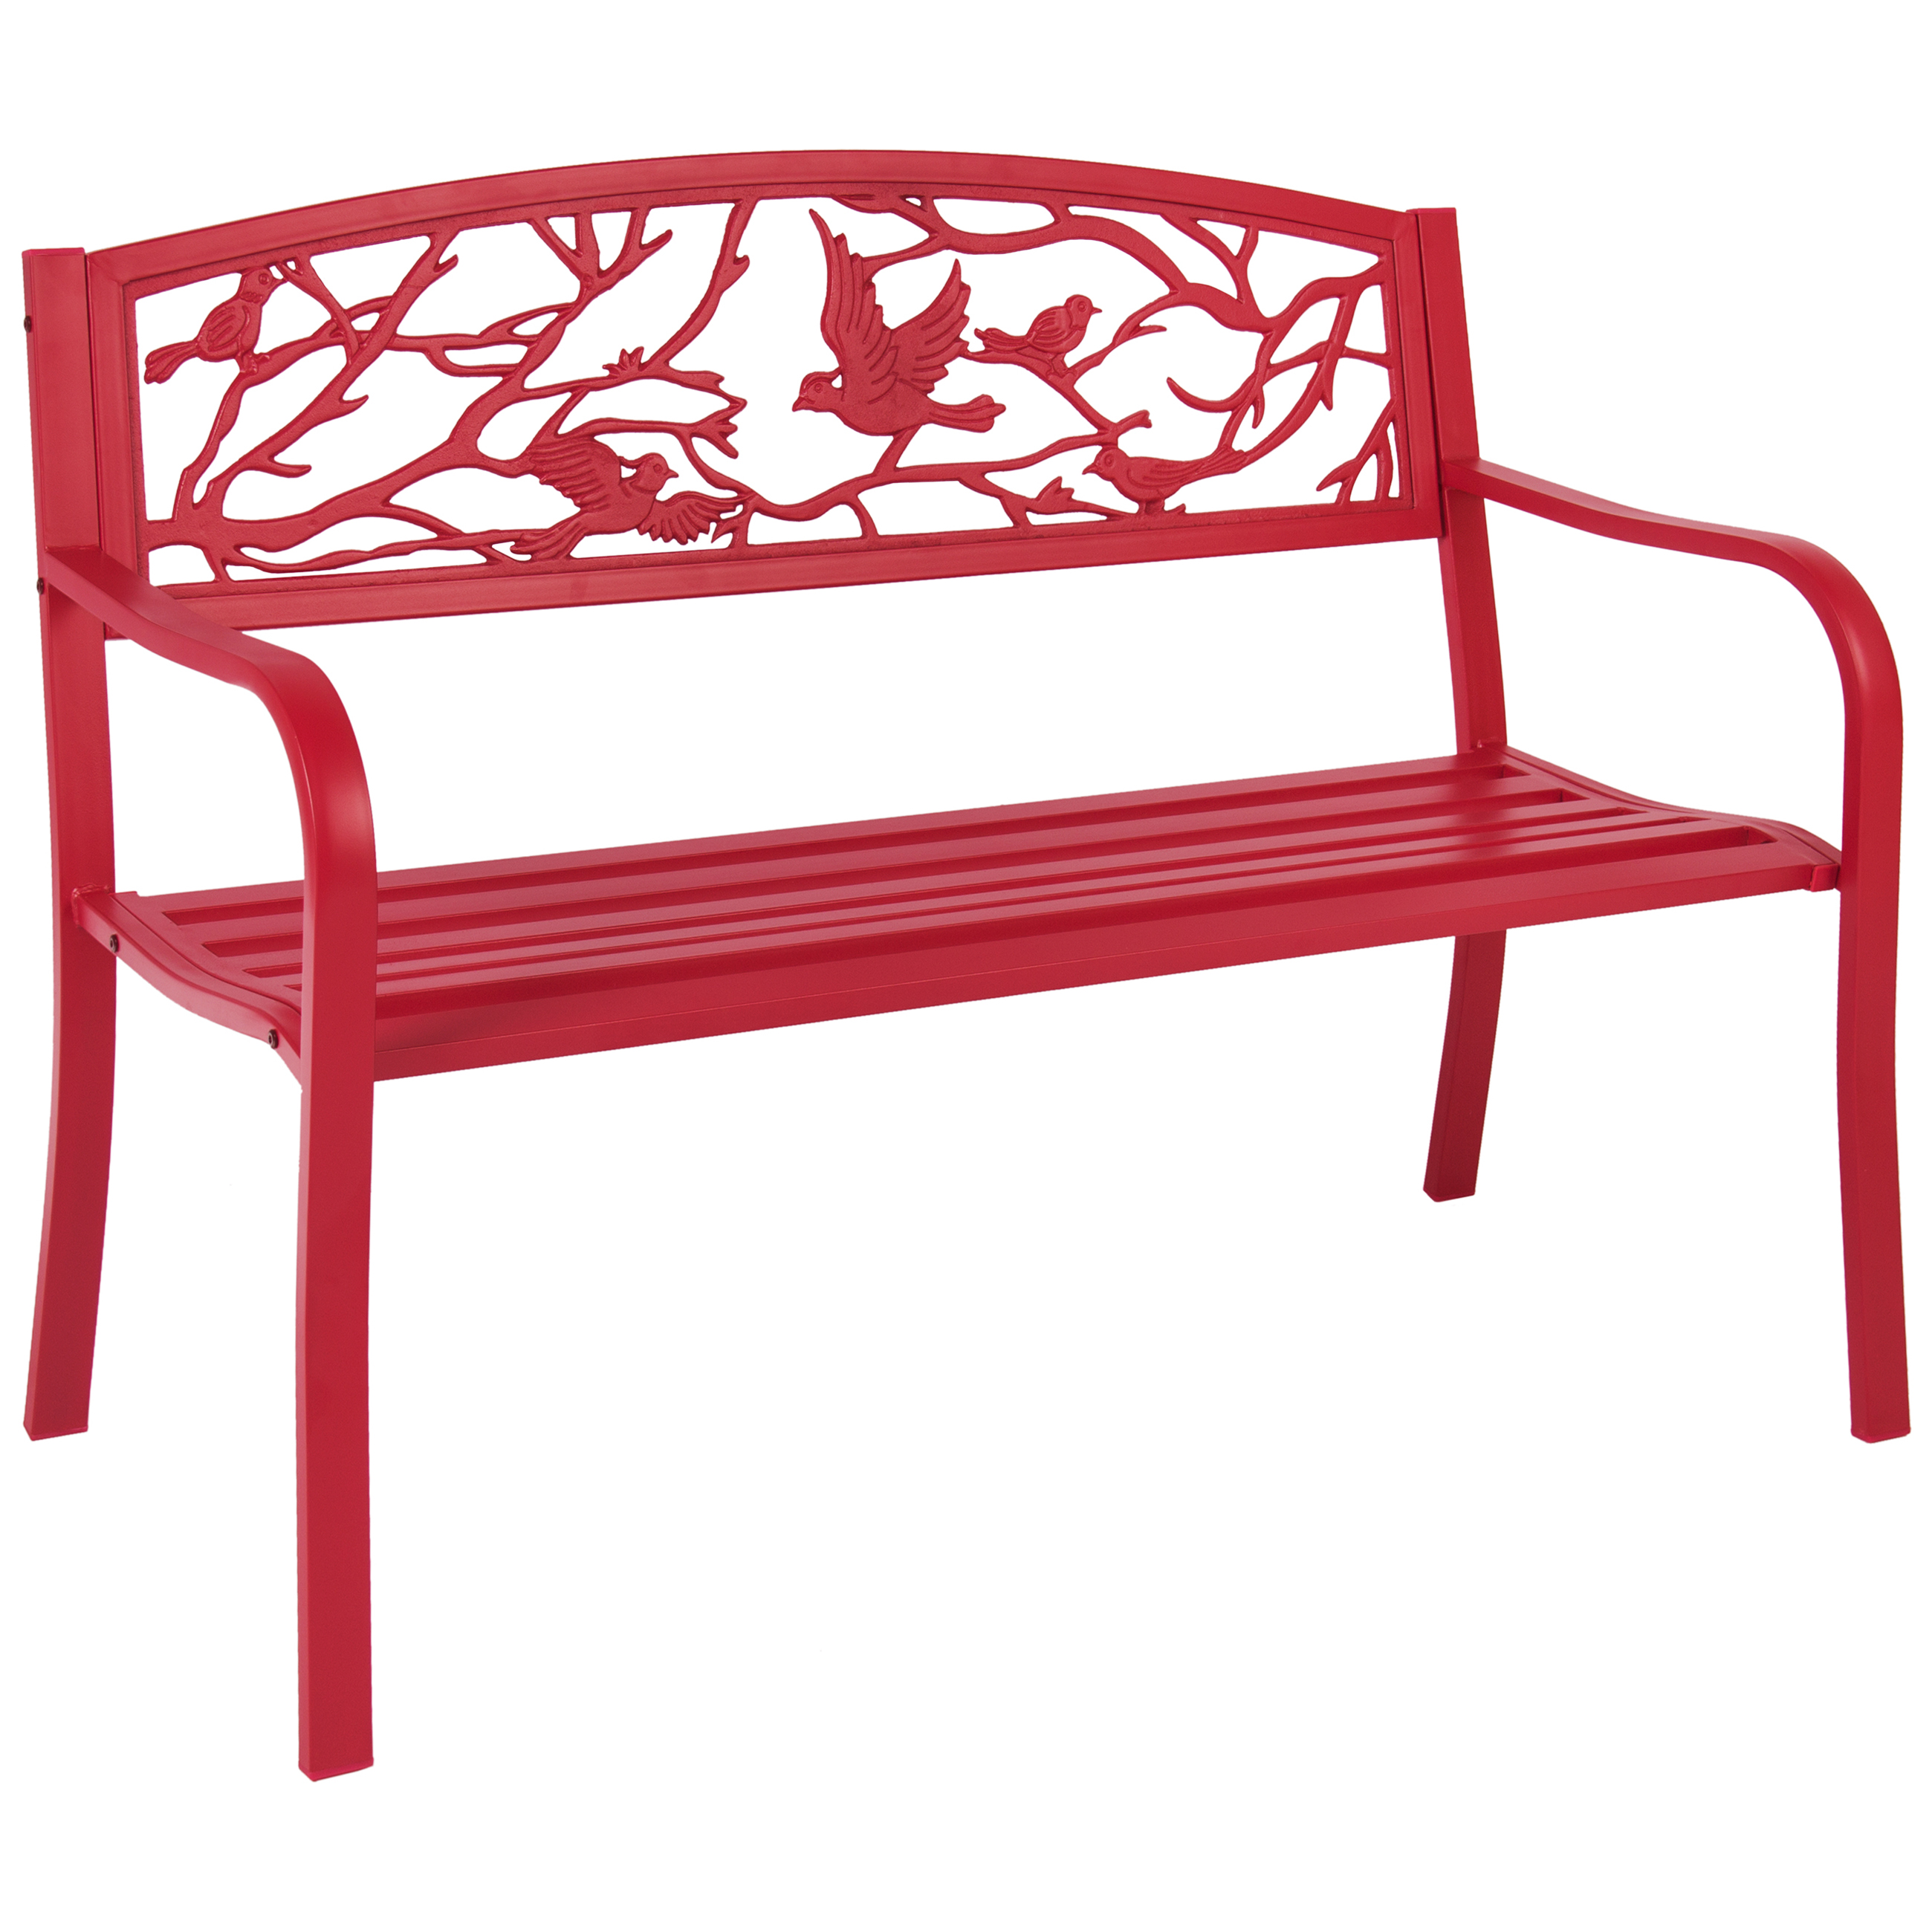 Awesome Rose Red Steel Patio Garden Park Bench Outdoor Living Patio Furniture Short Links Chair Design For Home Short Linksinfo